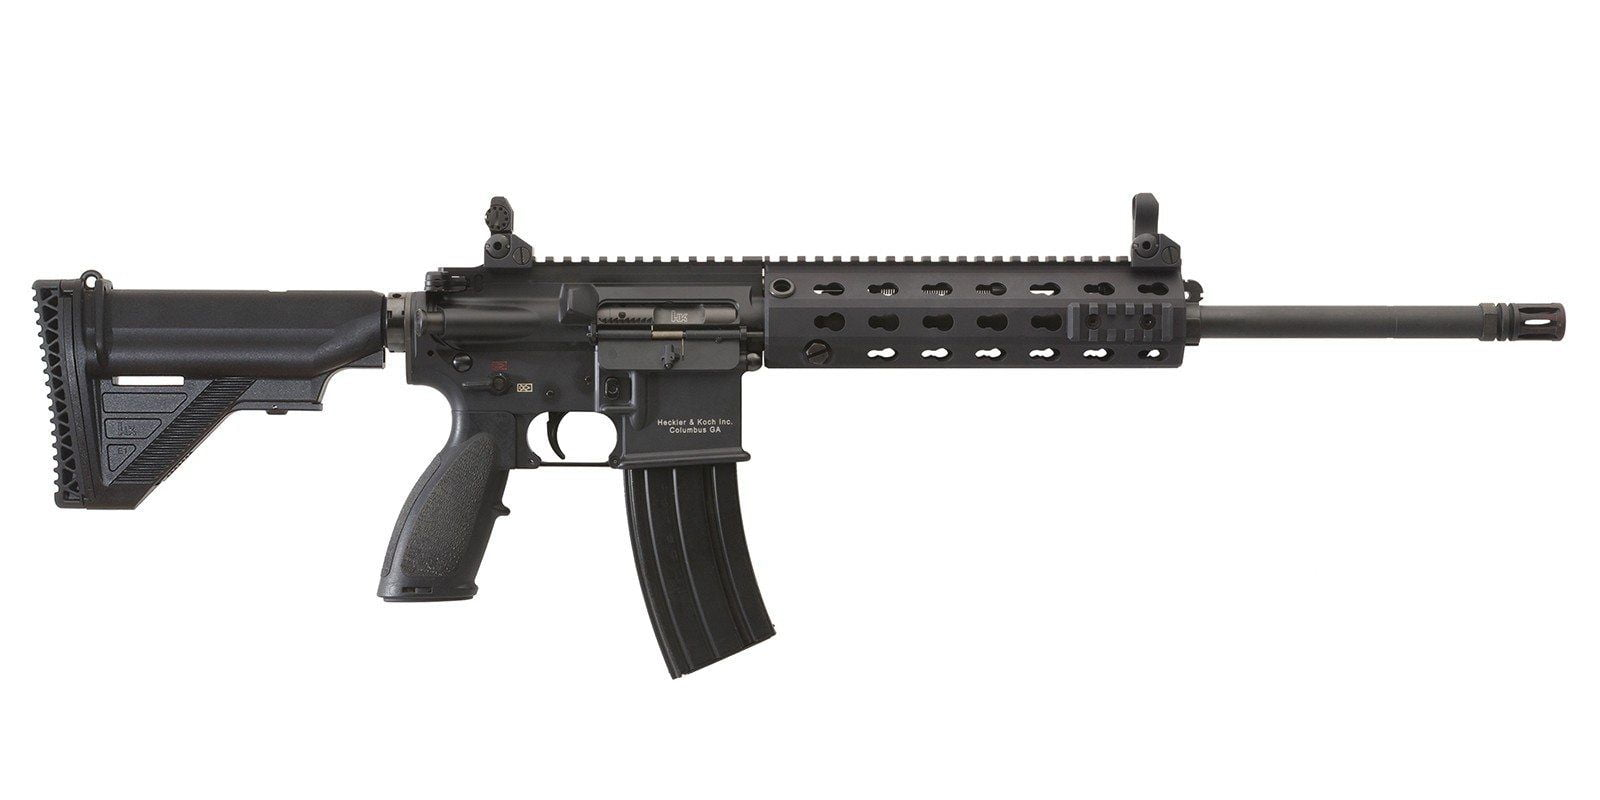 HK MR556A1 FOR SALE